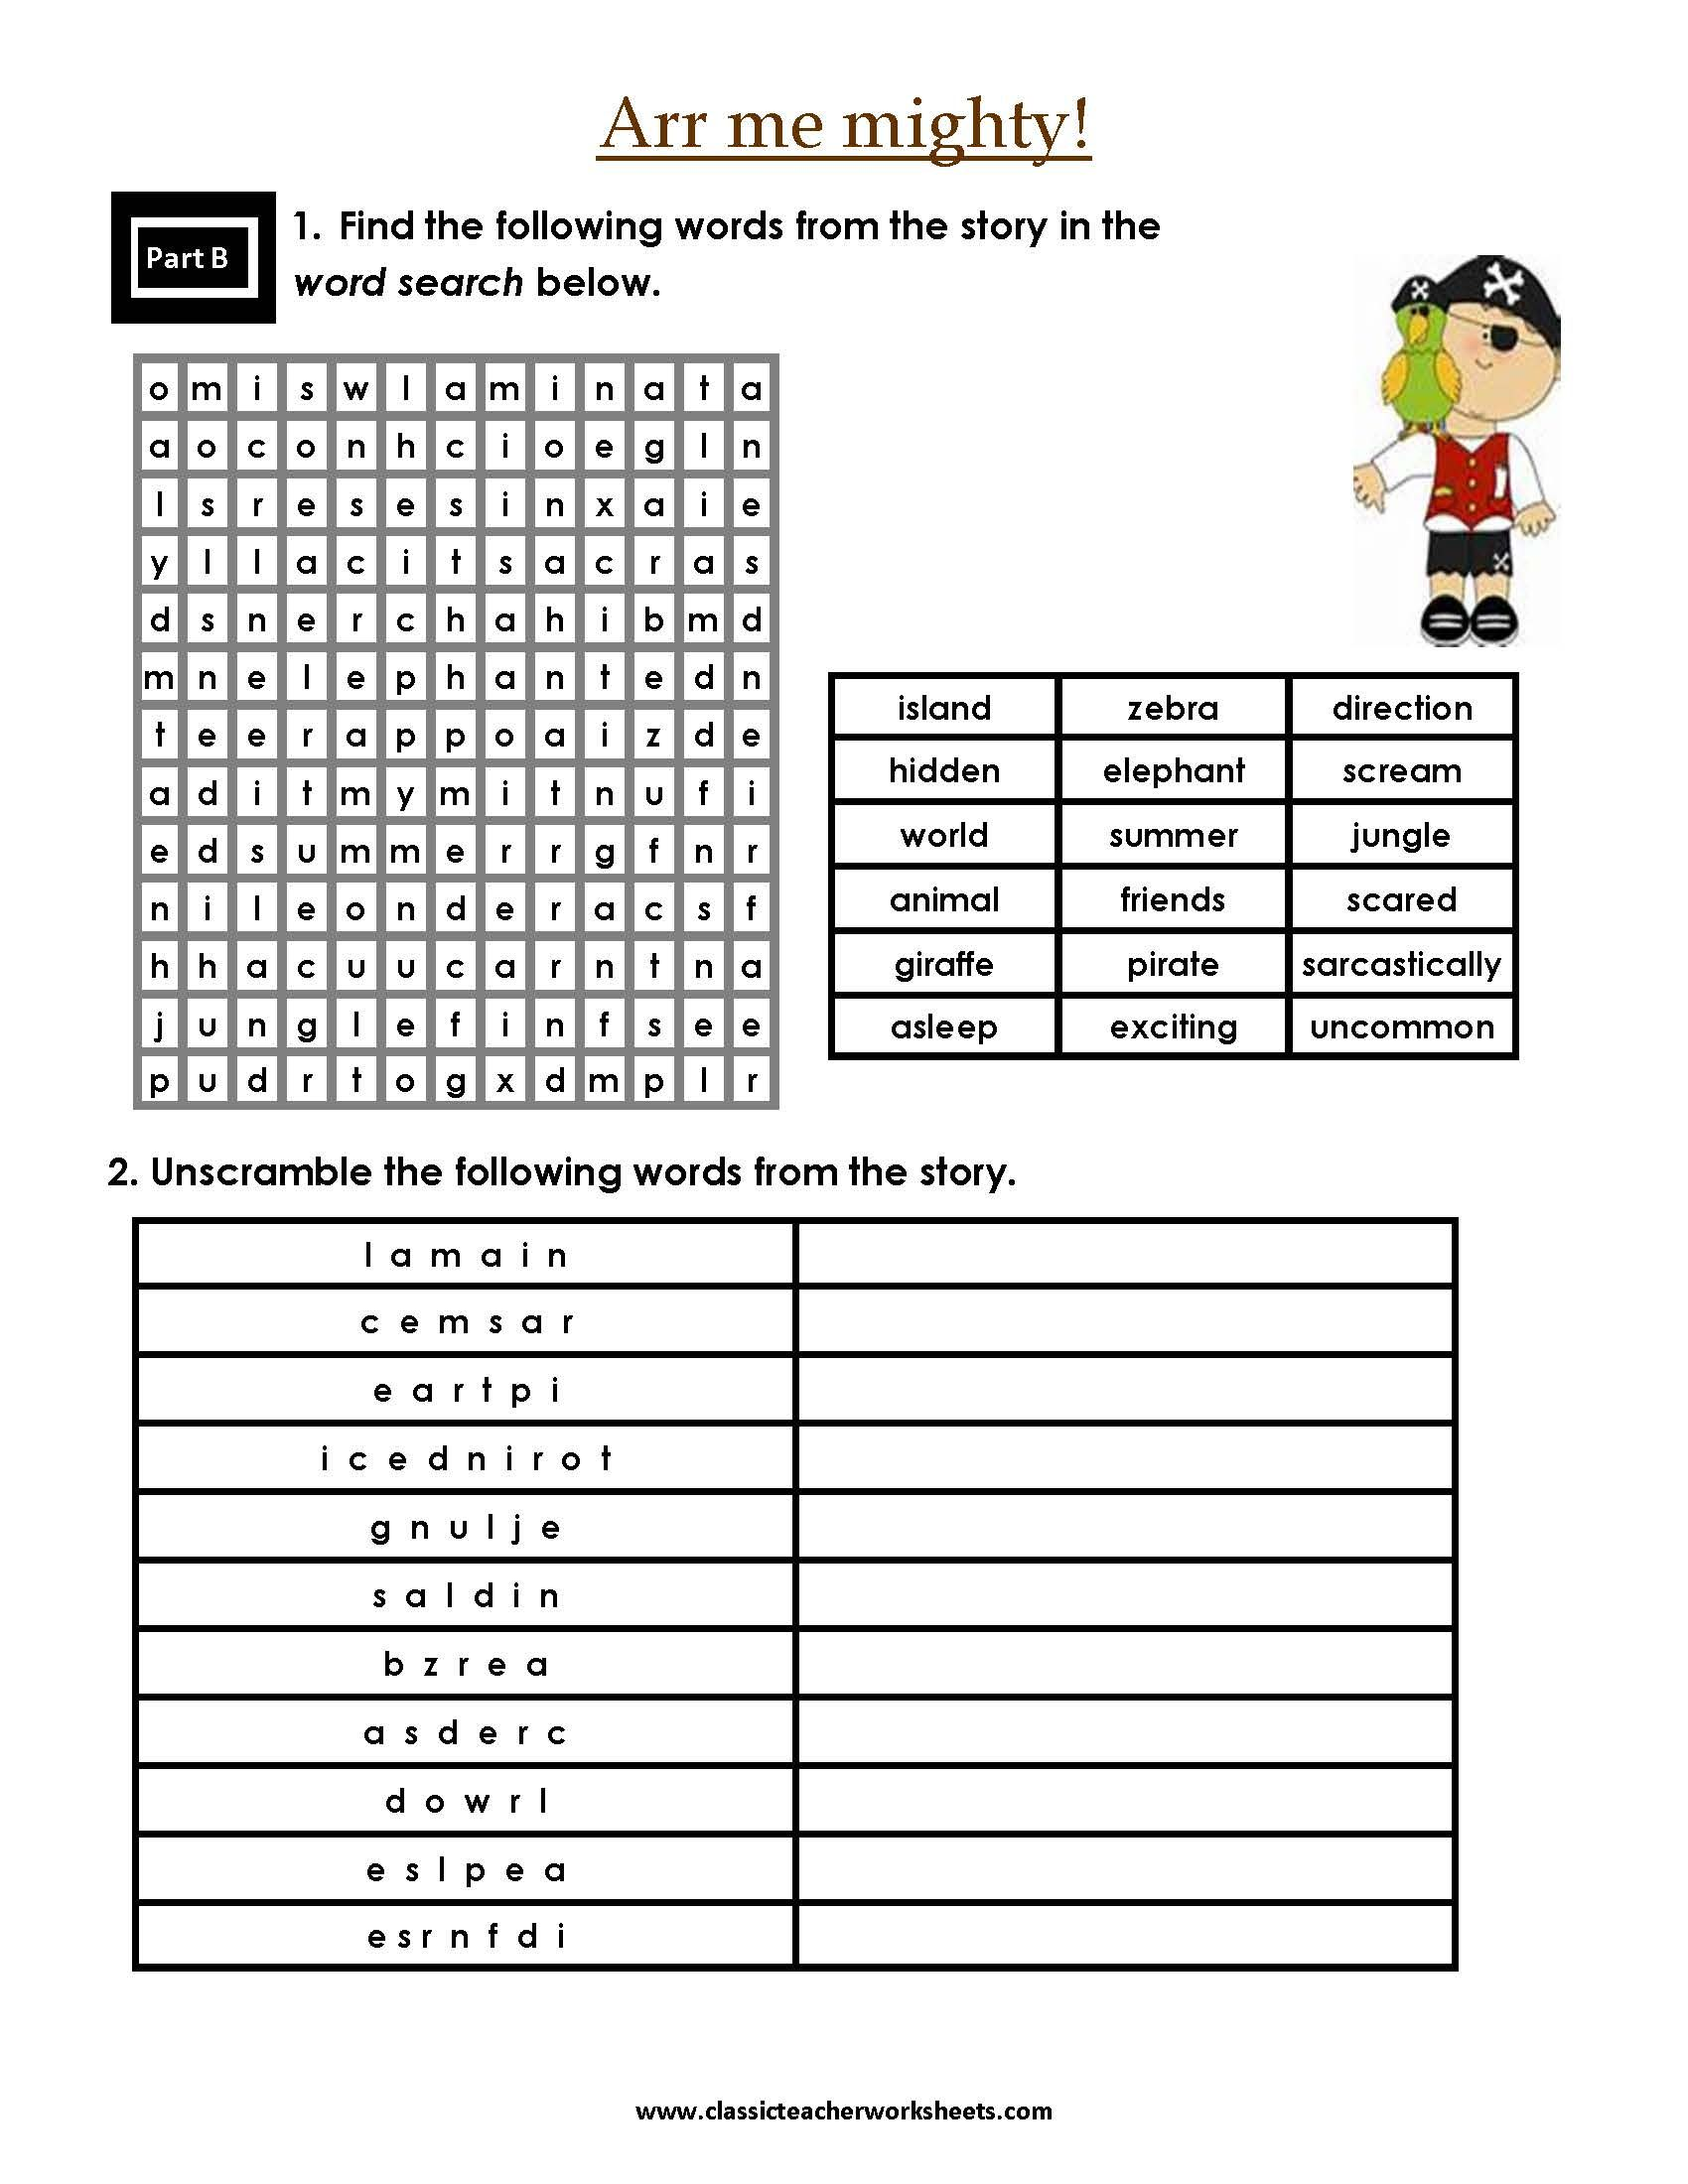 Check Out Our Collection Of Reading Worksheets At